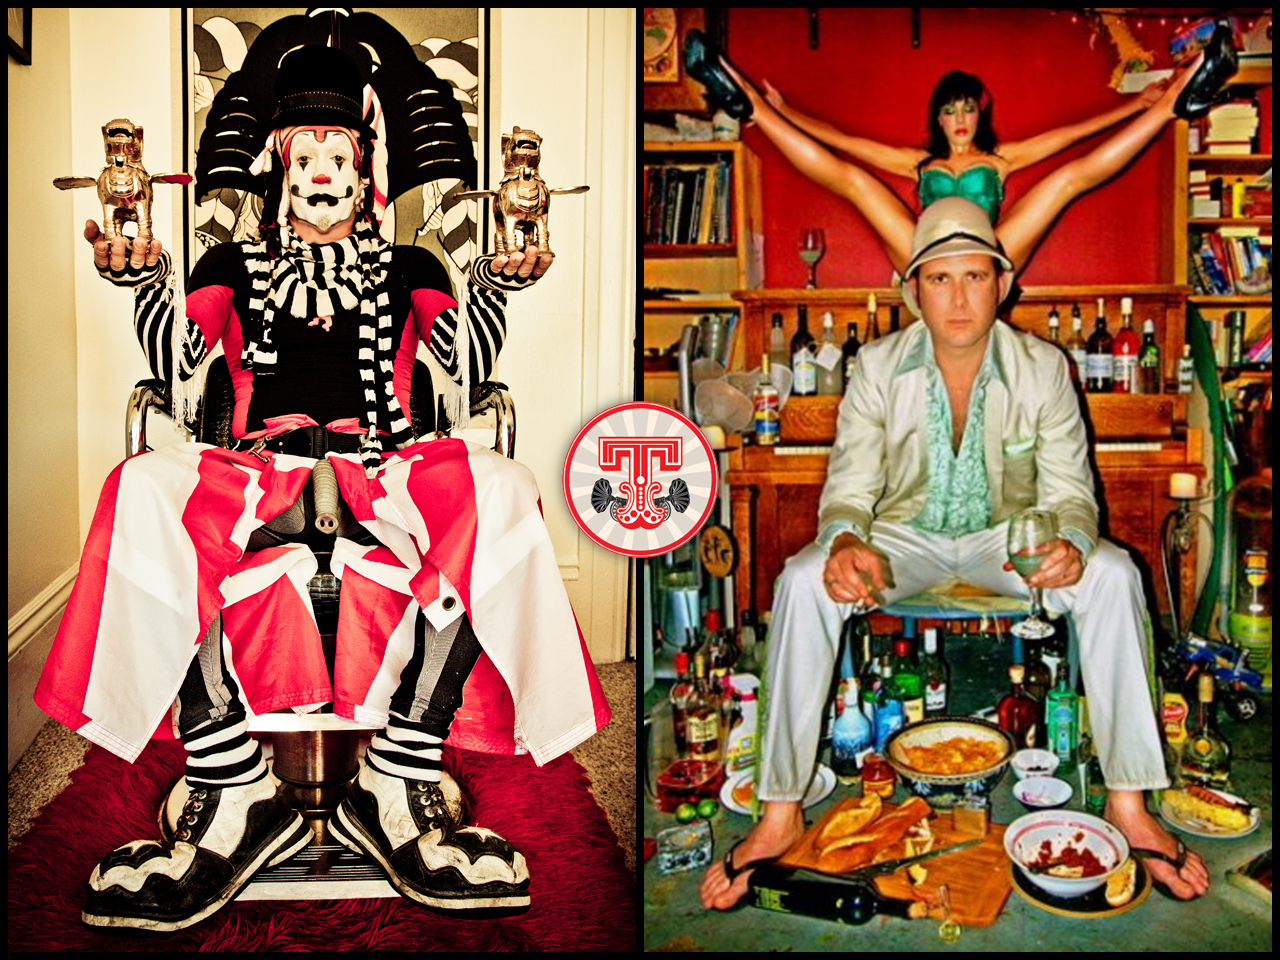 The Klown and Delachaux - Co-Producers & Resident DJs - Trapeze Worldwide